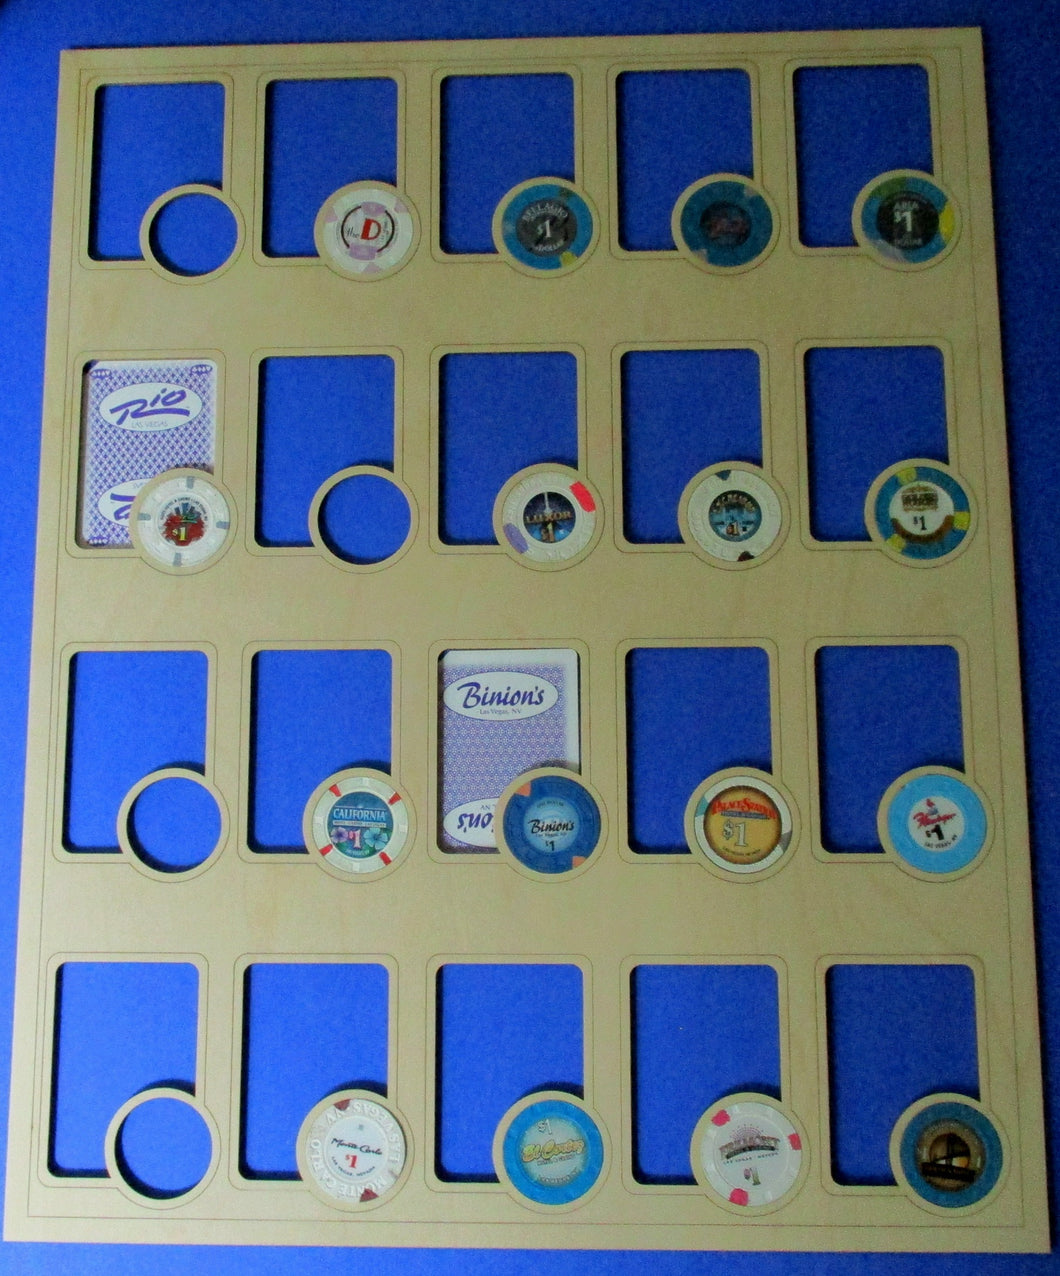 Custom Poker Player Chip and Card Insert Fits 20 casino playing cards and 20 casino poker chips 16X20 Collector's gift Poker Night